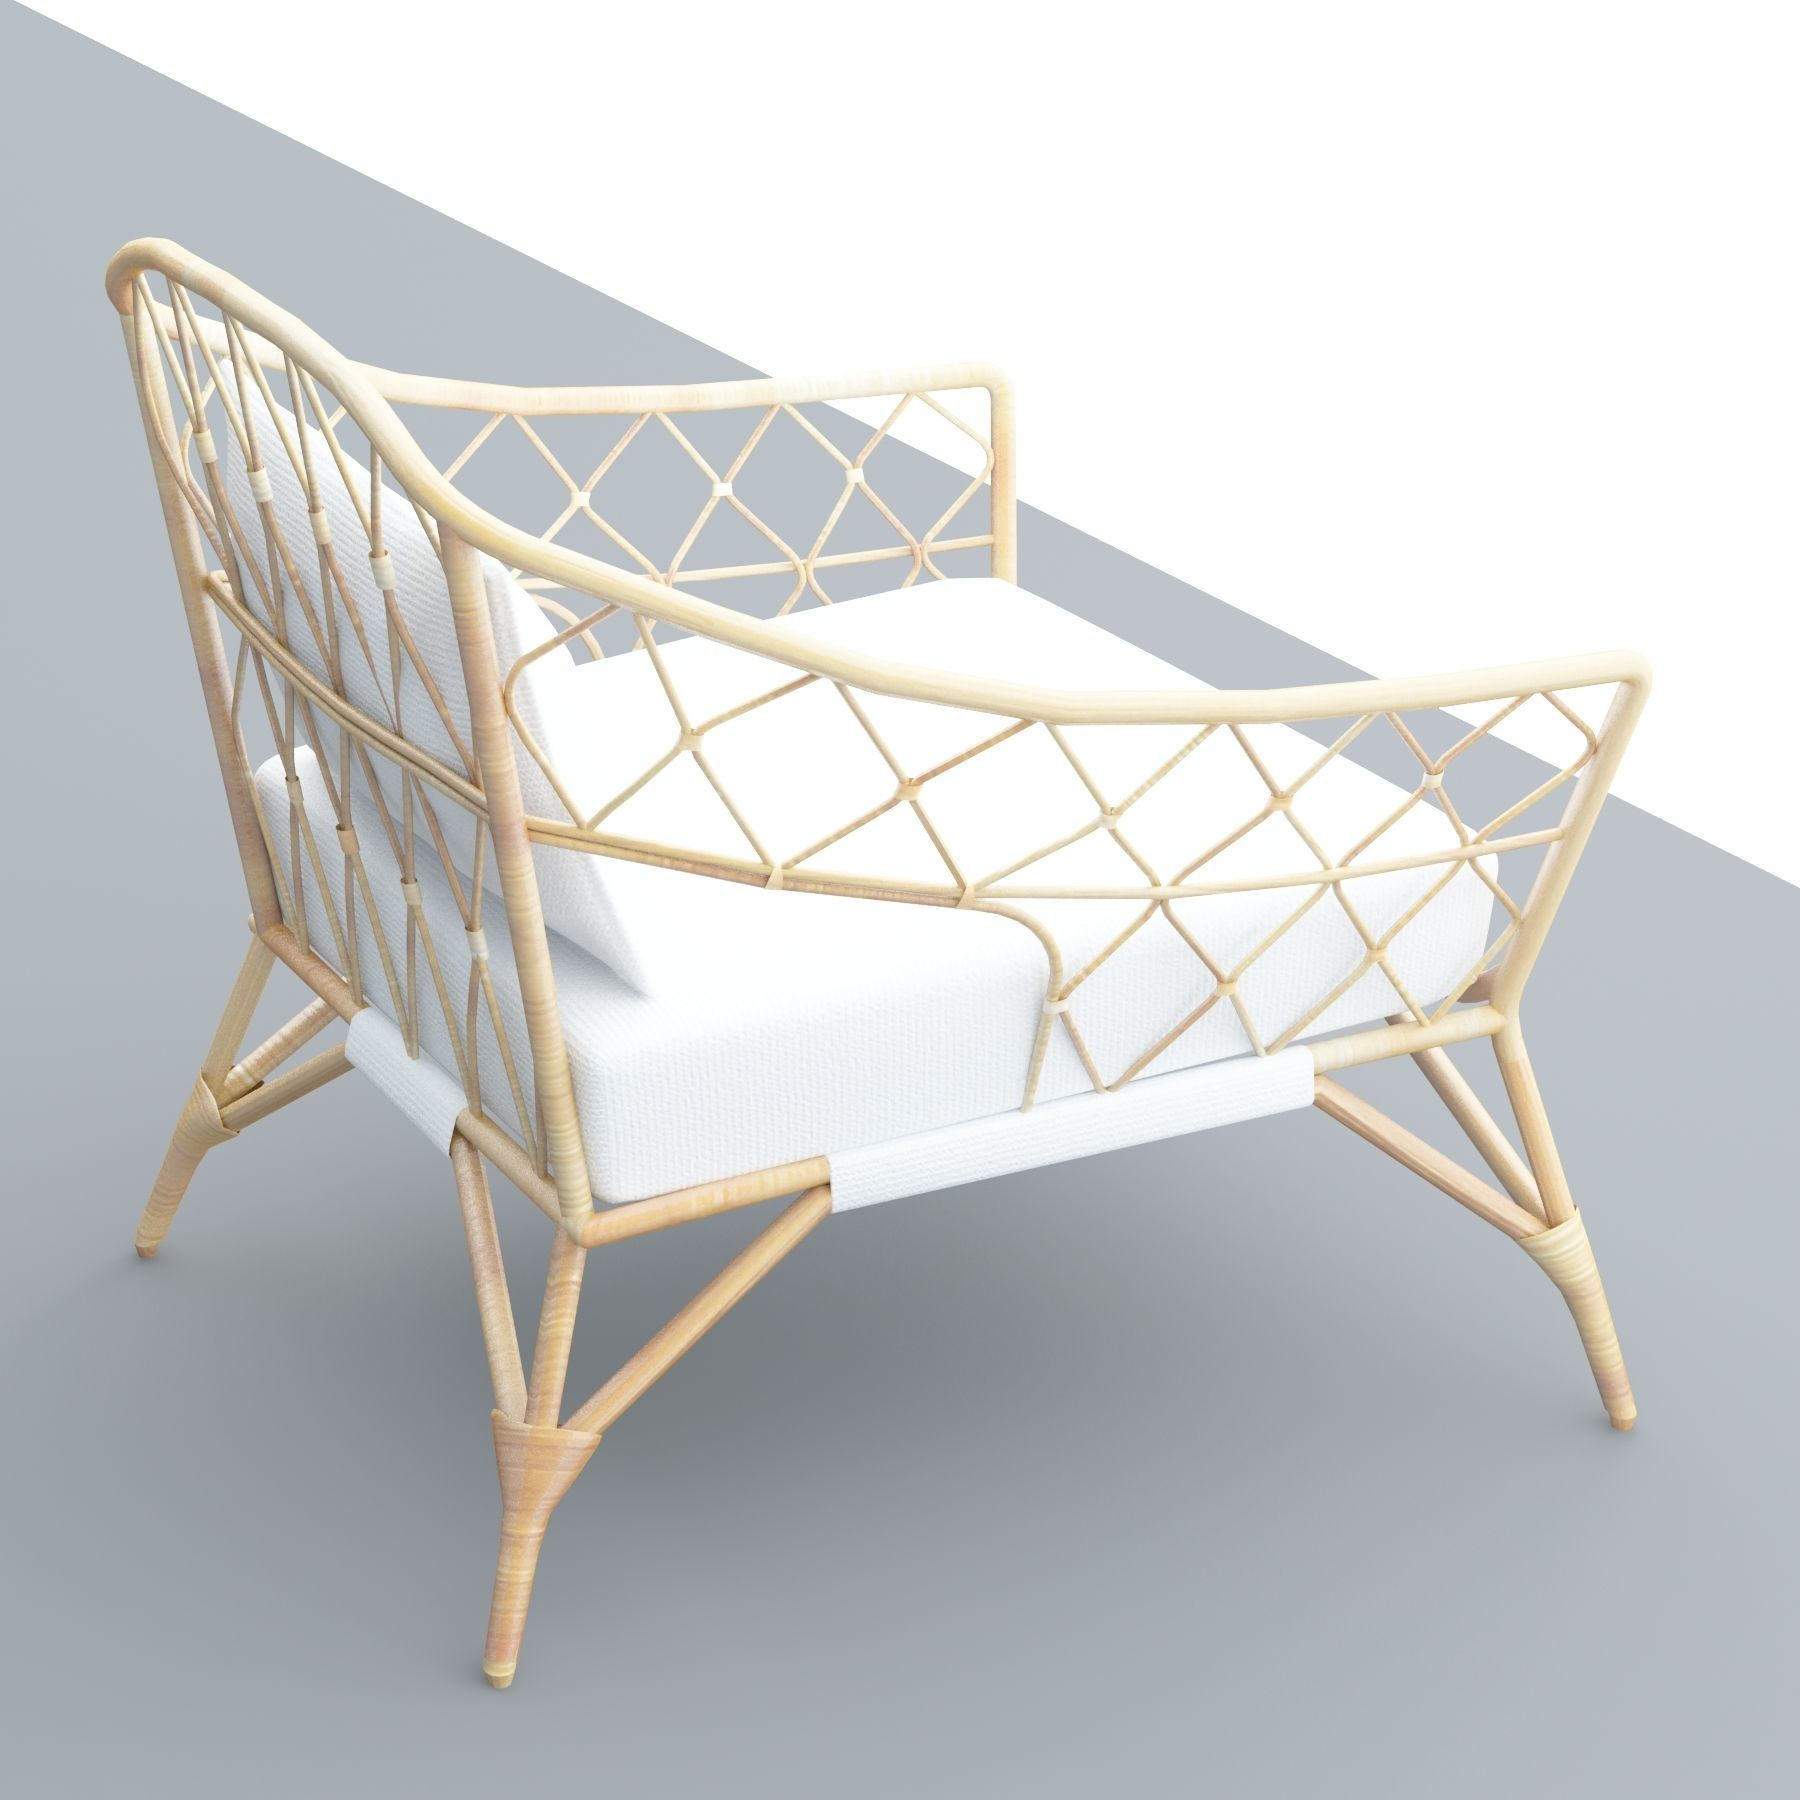 Stockholm Ikea Rattan Chair Model Low Poly Max Obj Mtl S Fbx Dae Skp